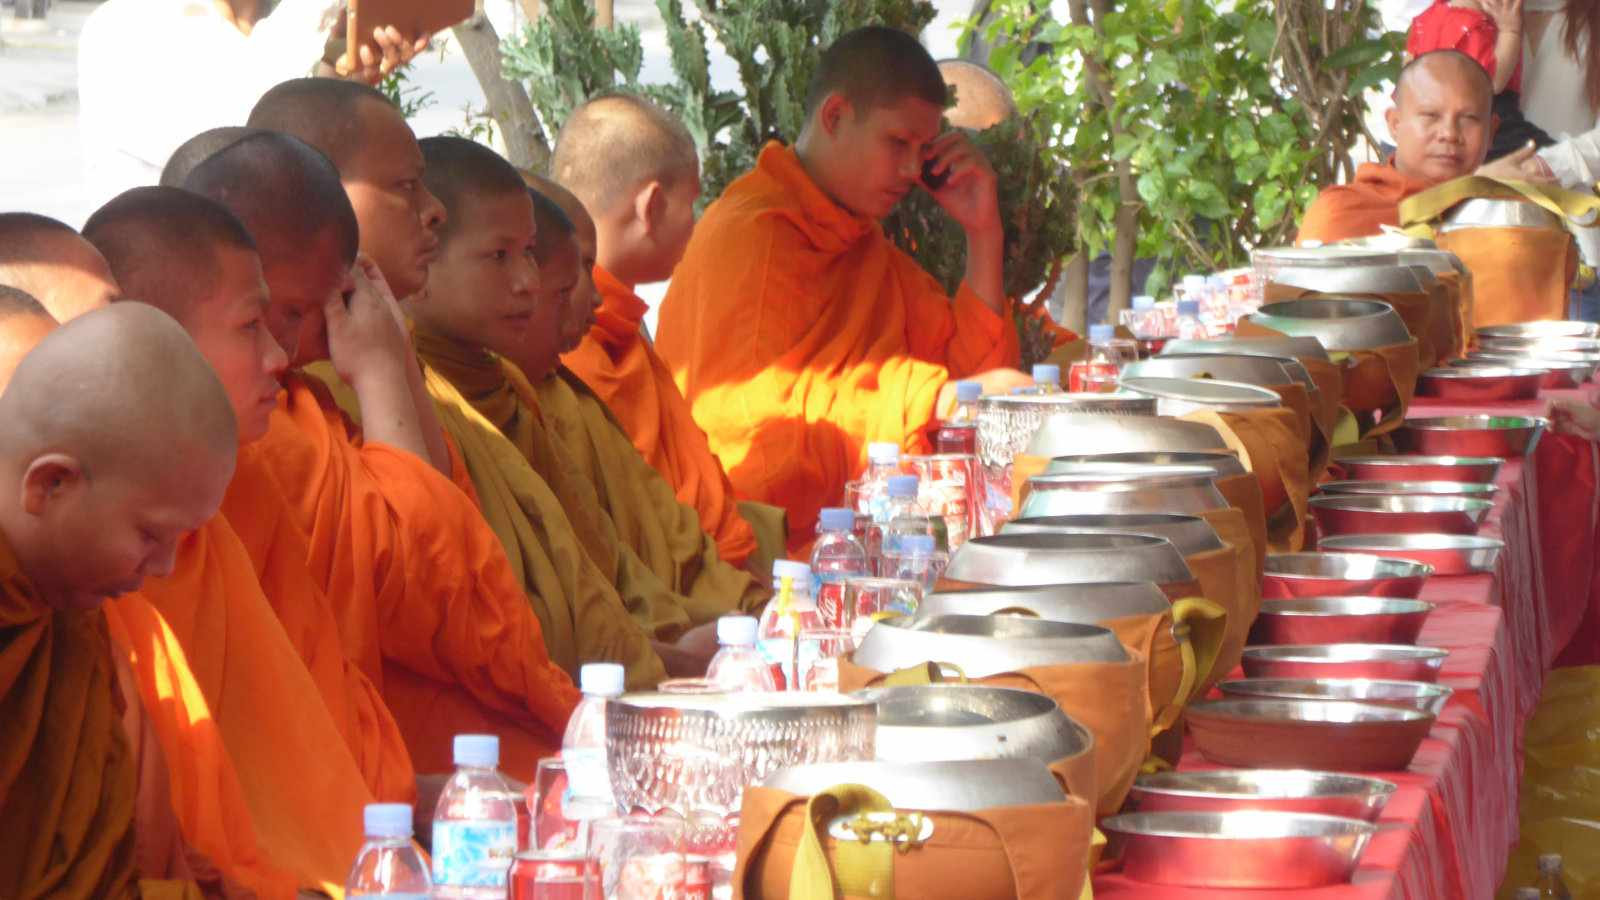 Two days in Phnom Penh is the least amount of time you need to really enjoy the city